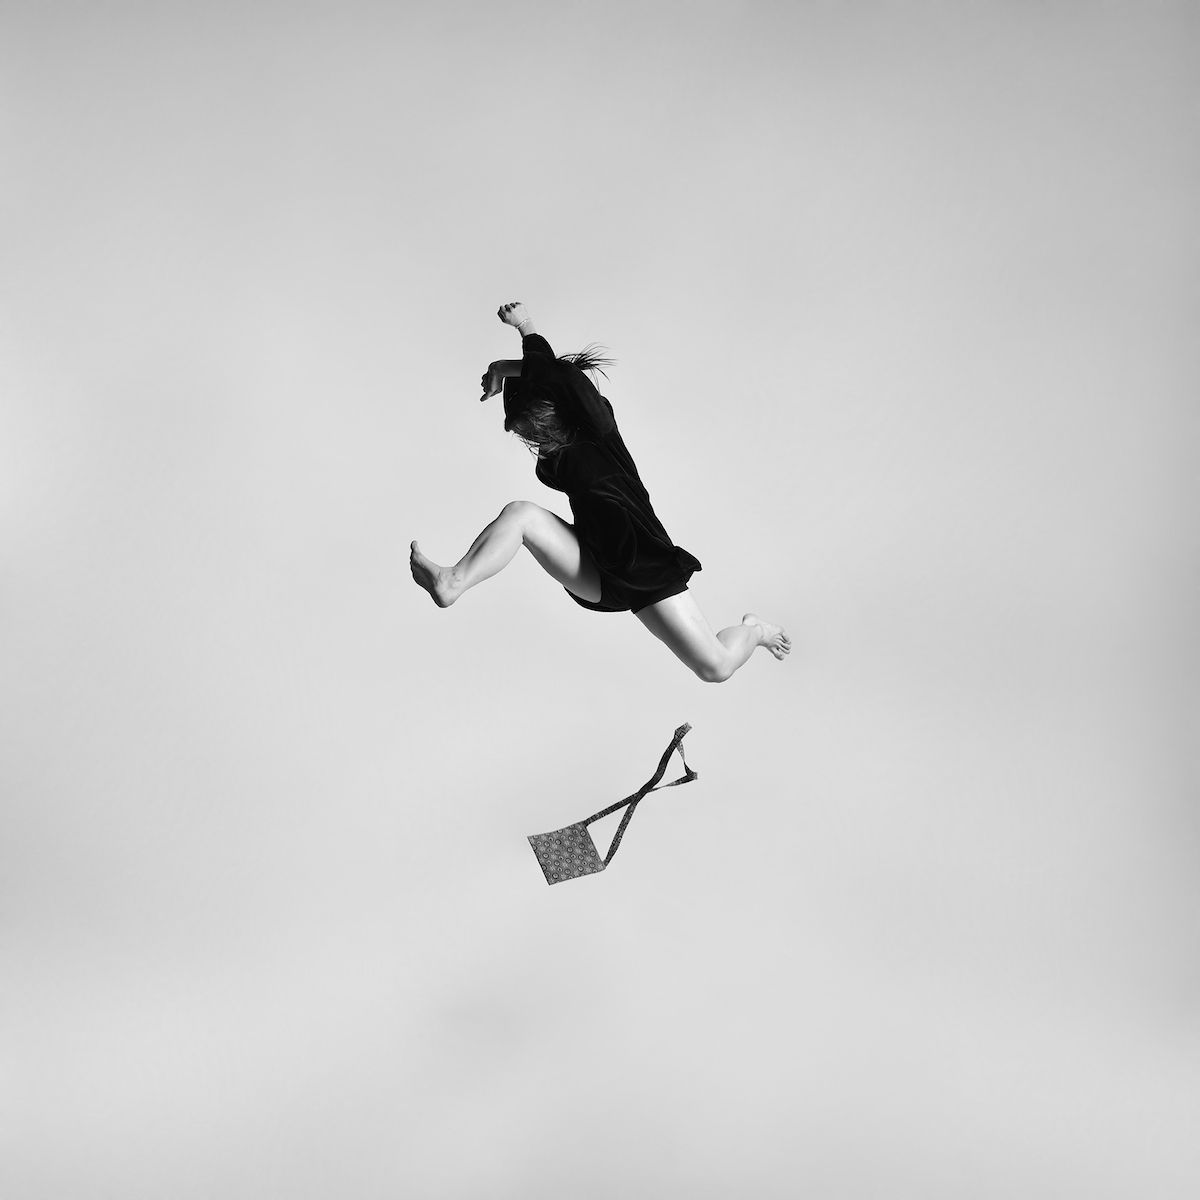 Tomas Januska Flotando Pinterest - Minimalistic black white photo series captures energetic movements mid air